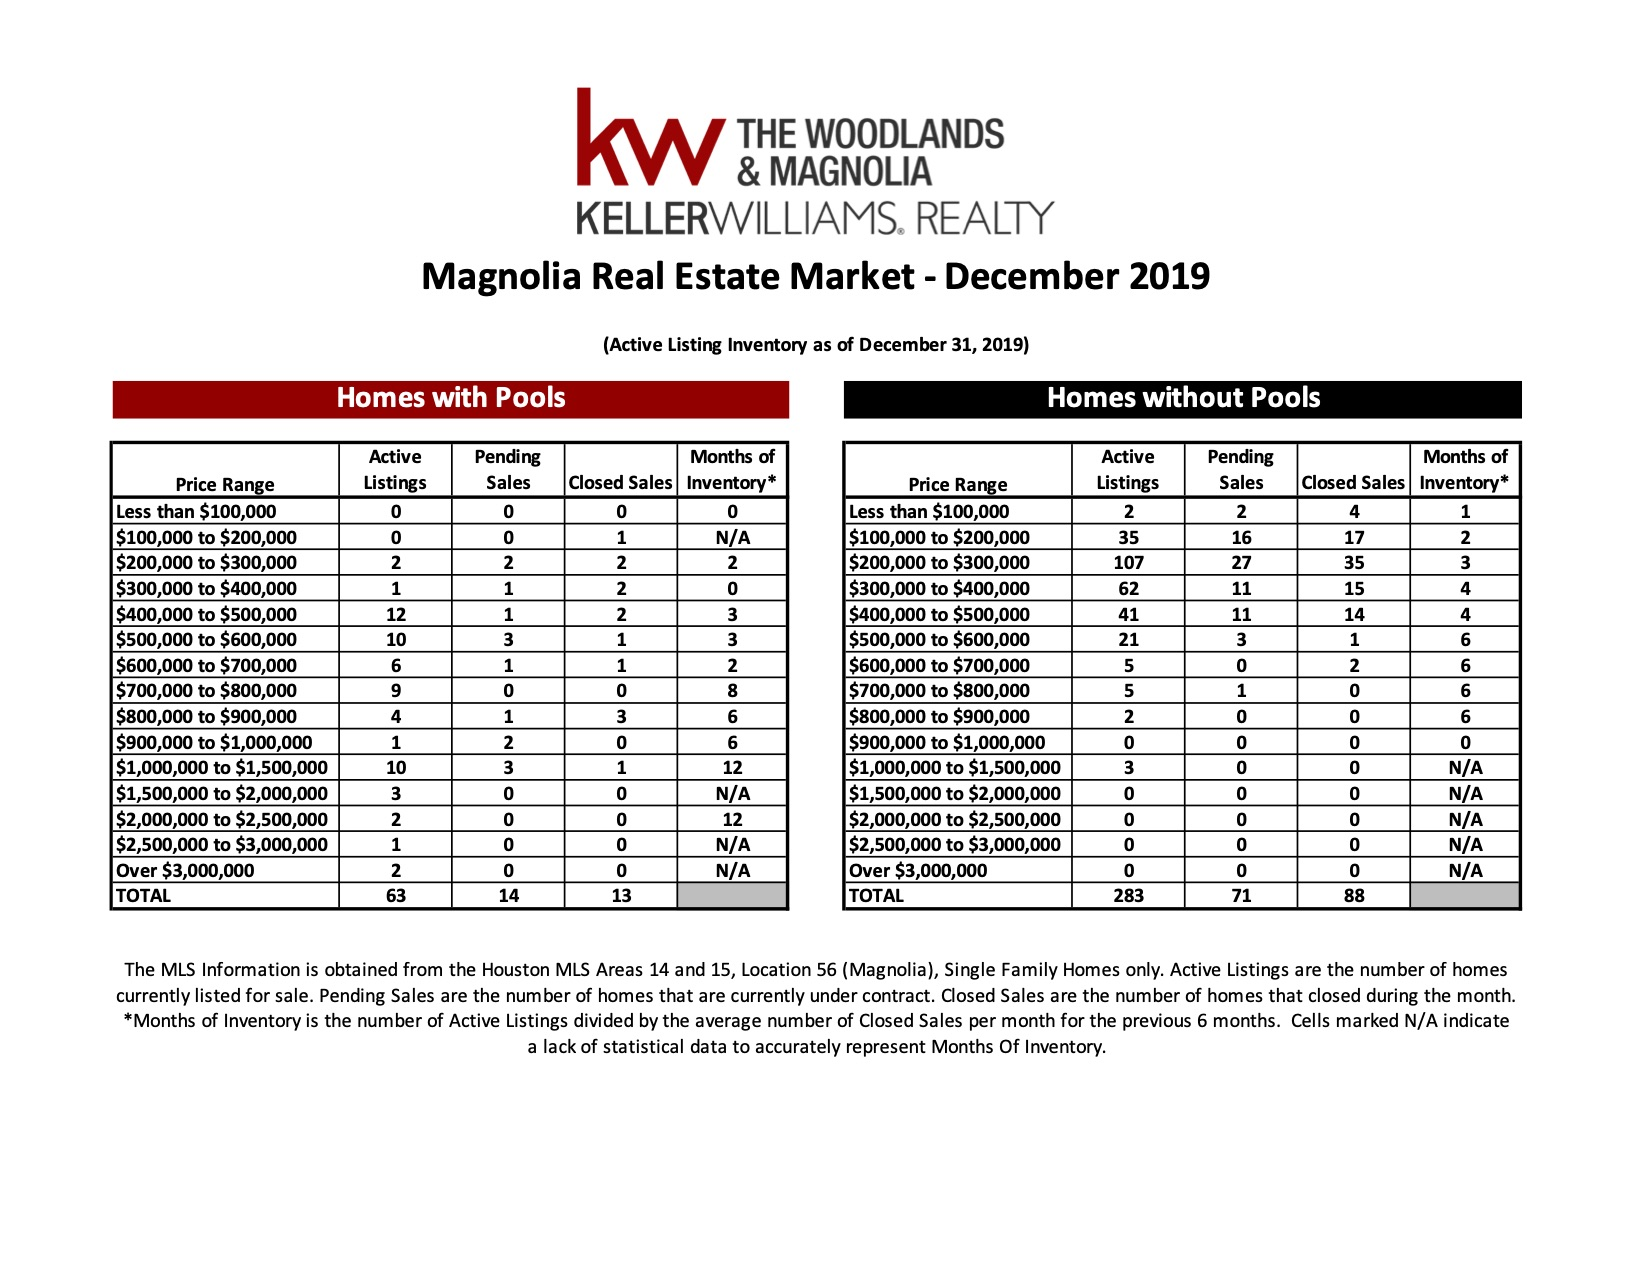 , December 2019 MarketWatch Report – Magnolia, KW Woodlands